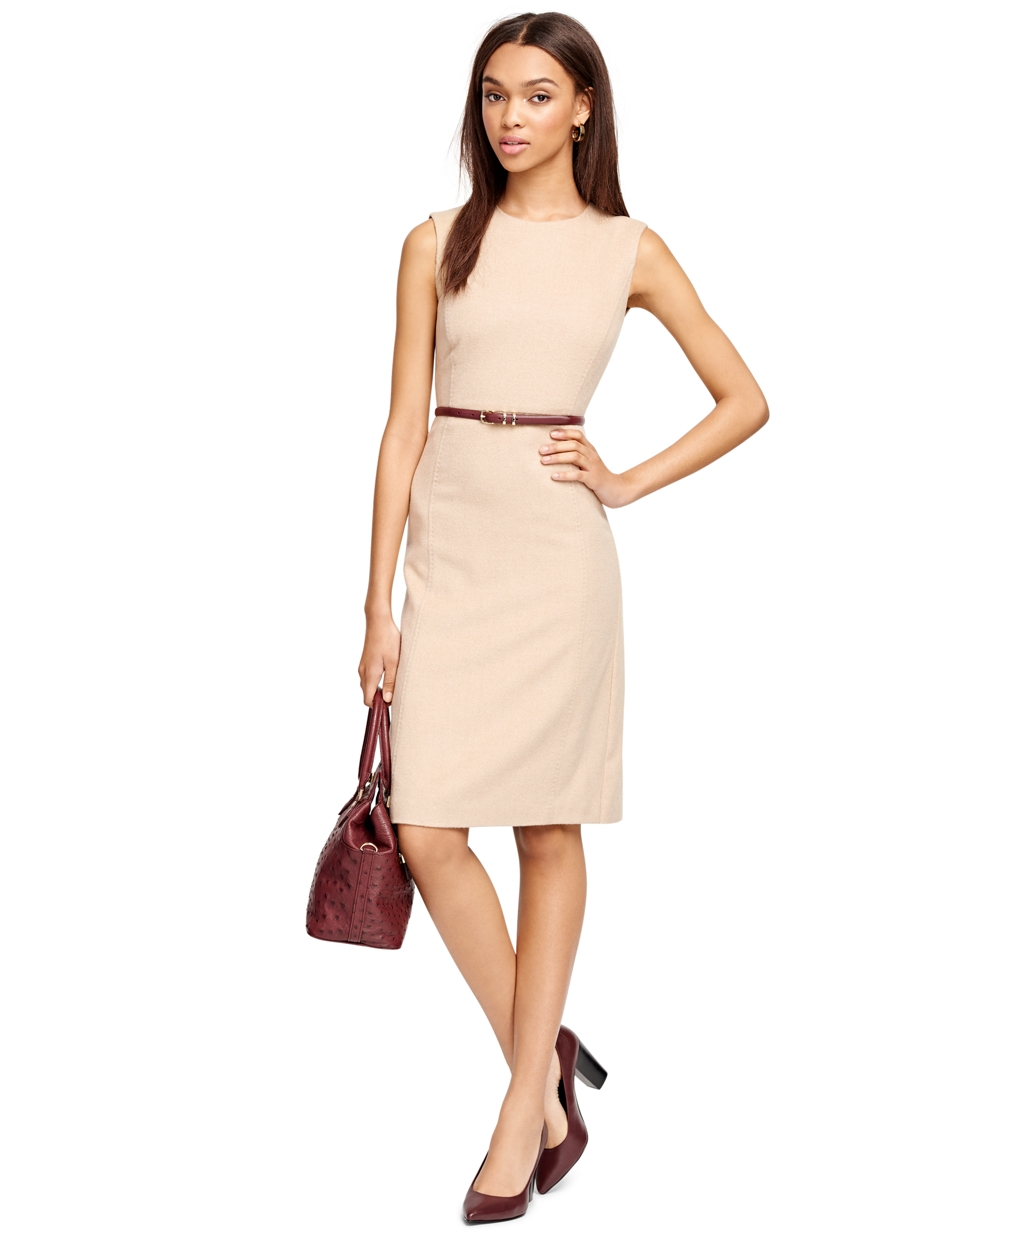 180d5cec1a3c2 Lyst - Brooks Brothers Camel Hair Sleeveless Dress in Natural